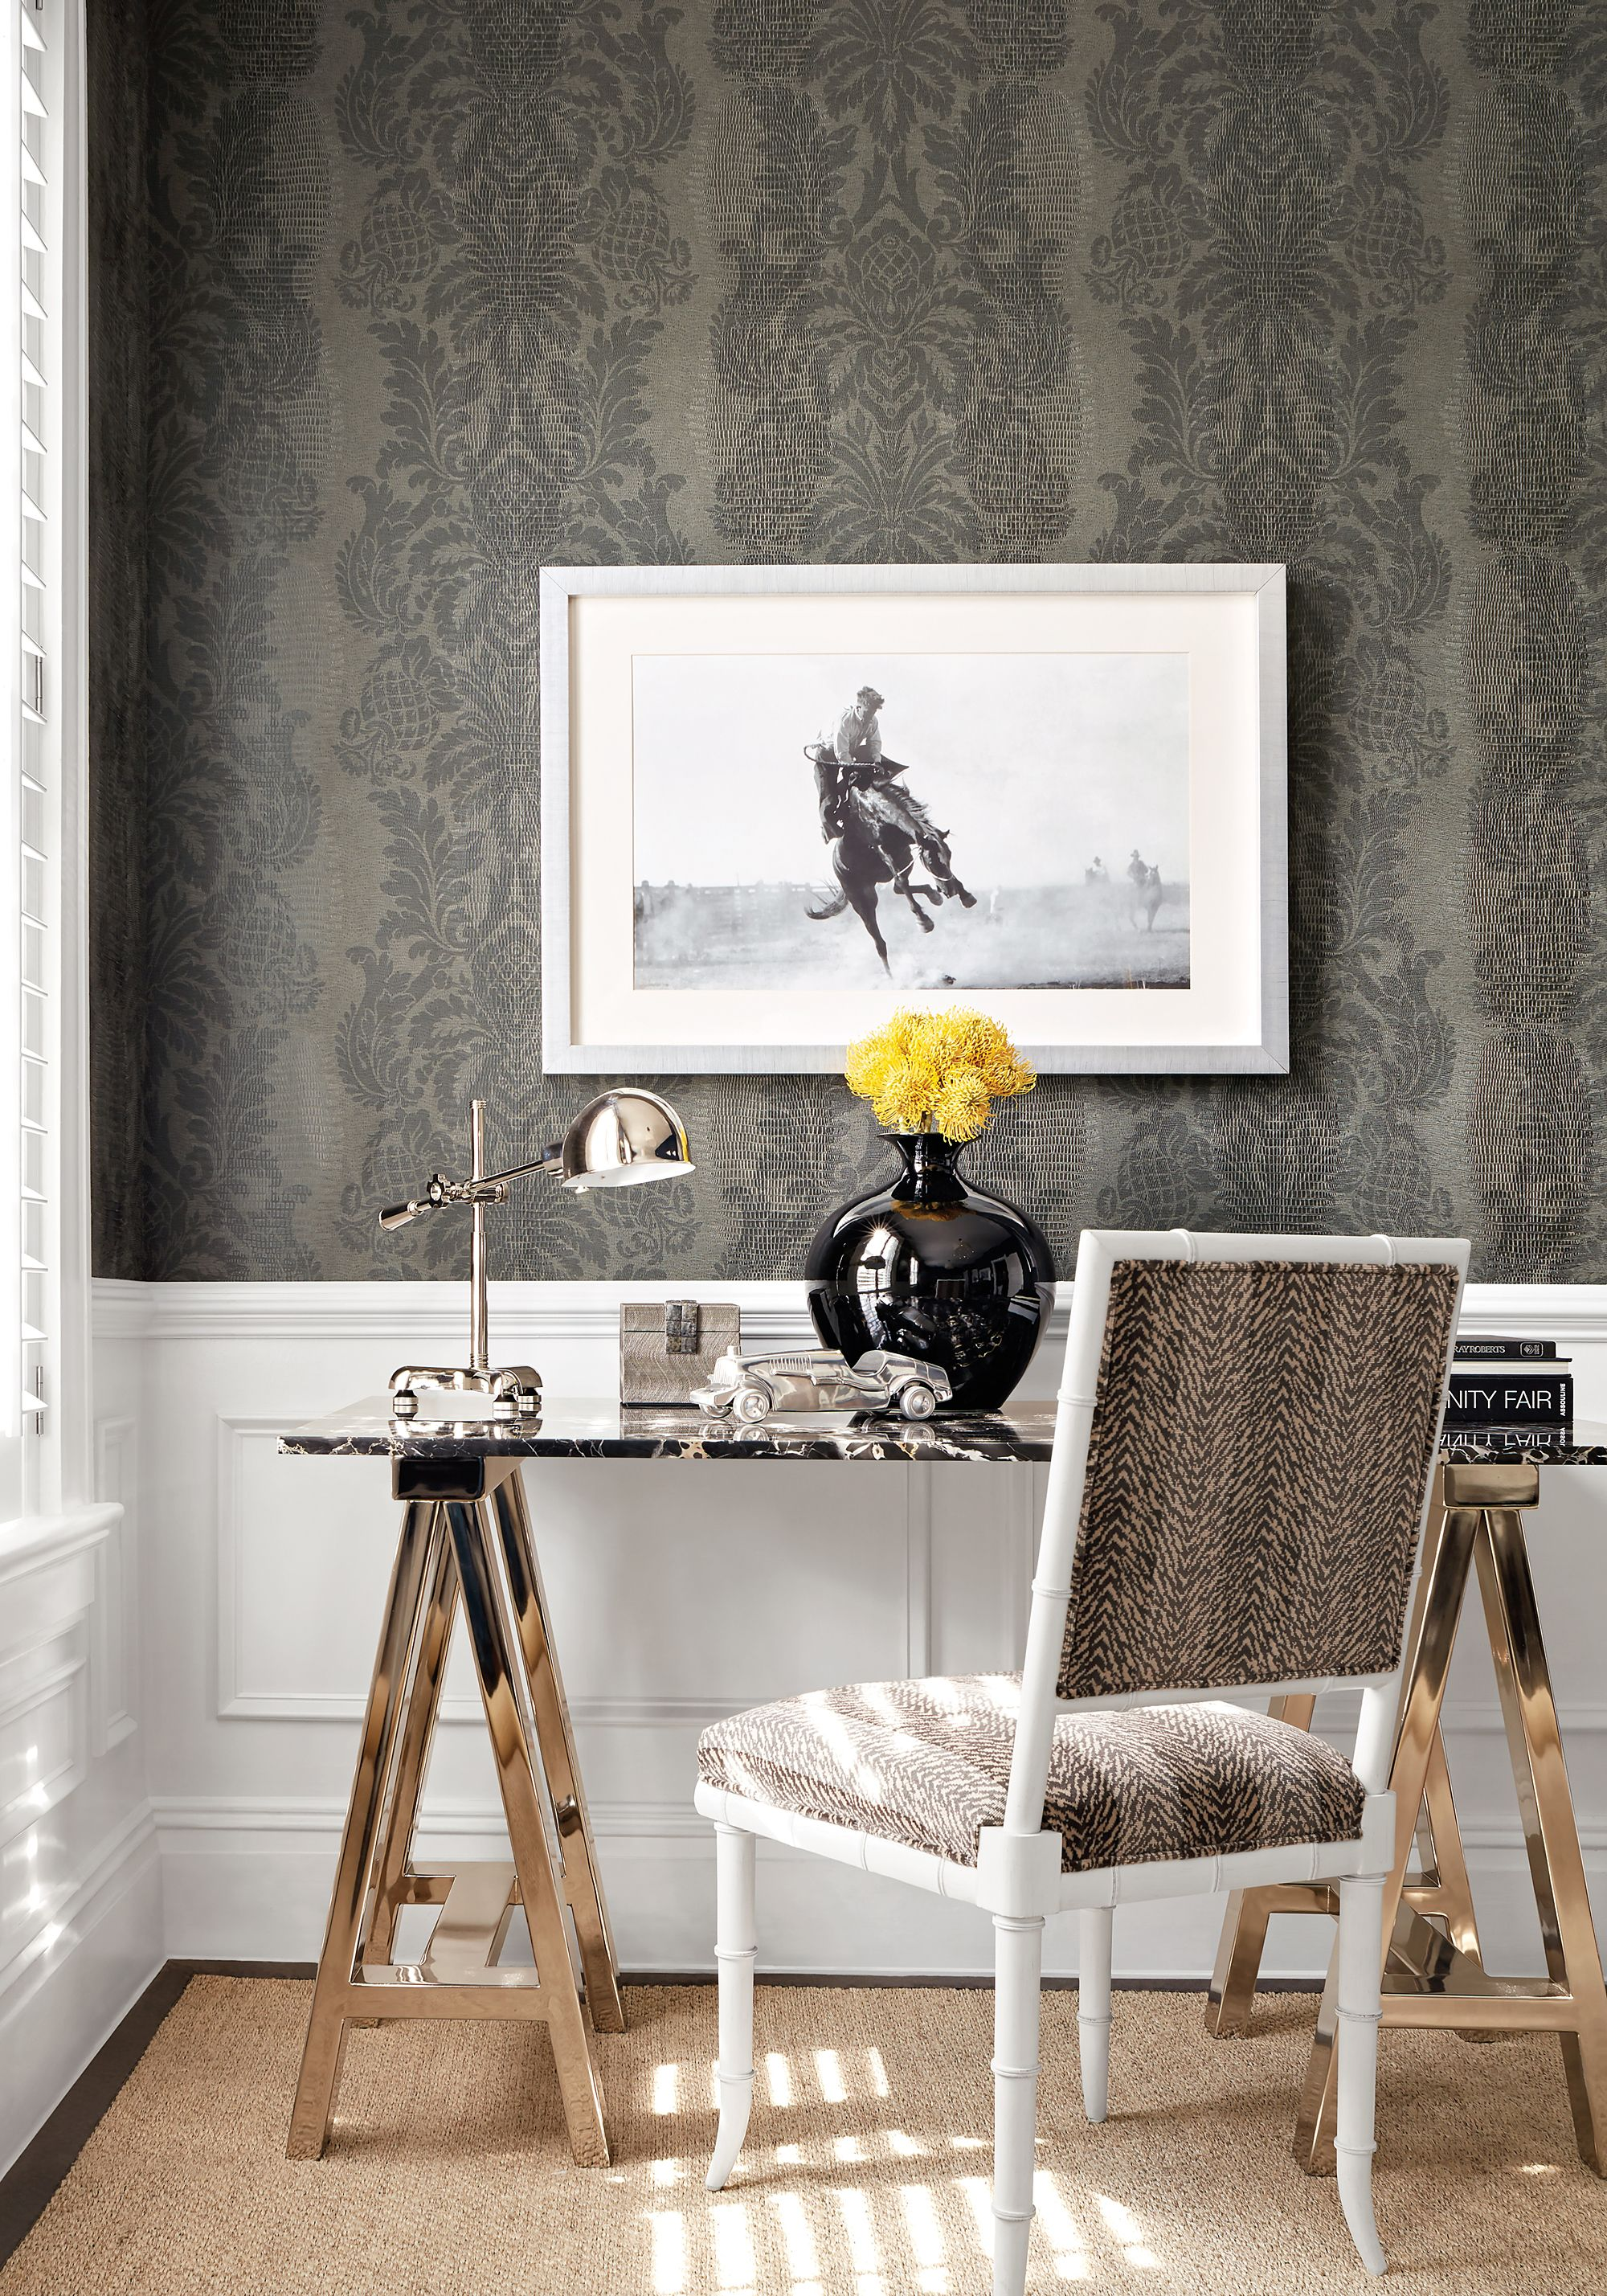 wallpaper designs for office. Darien Chair From Thibaut Fine Furniture In Tigris Velvet Woven Fabric Brown. Damask WallpaperWallpaper DesignsGrey OfficeFrench Wallpaper Designs For Office A